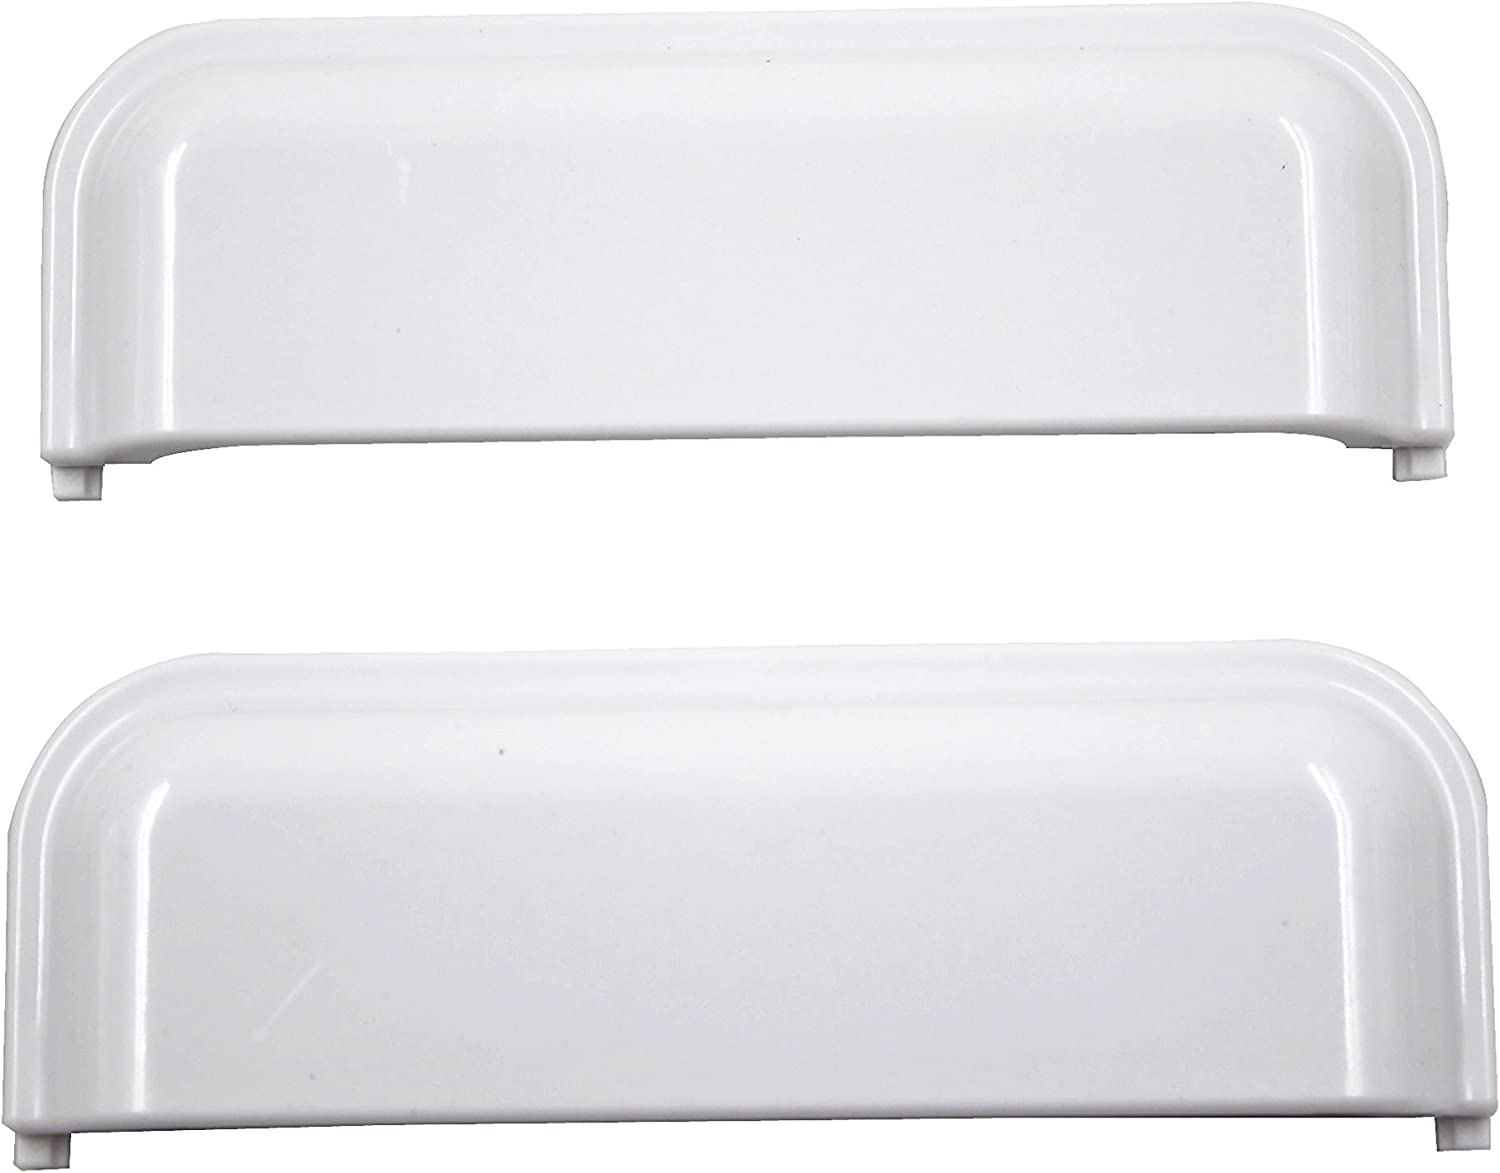 W10861225,AP5999398,PS11731583,W10861225VP, W10714516 Door Handle for Whirlpool Appliance Dryer replaces for Amana, Crosley, Maytag, Whirlpool, Kenmore Roper -replacement parts (Dry door handle 2pcs)